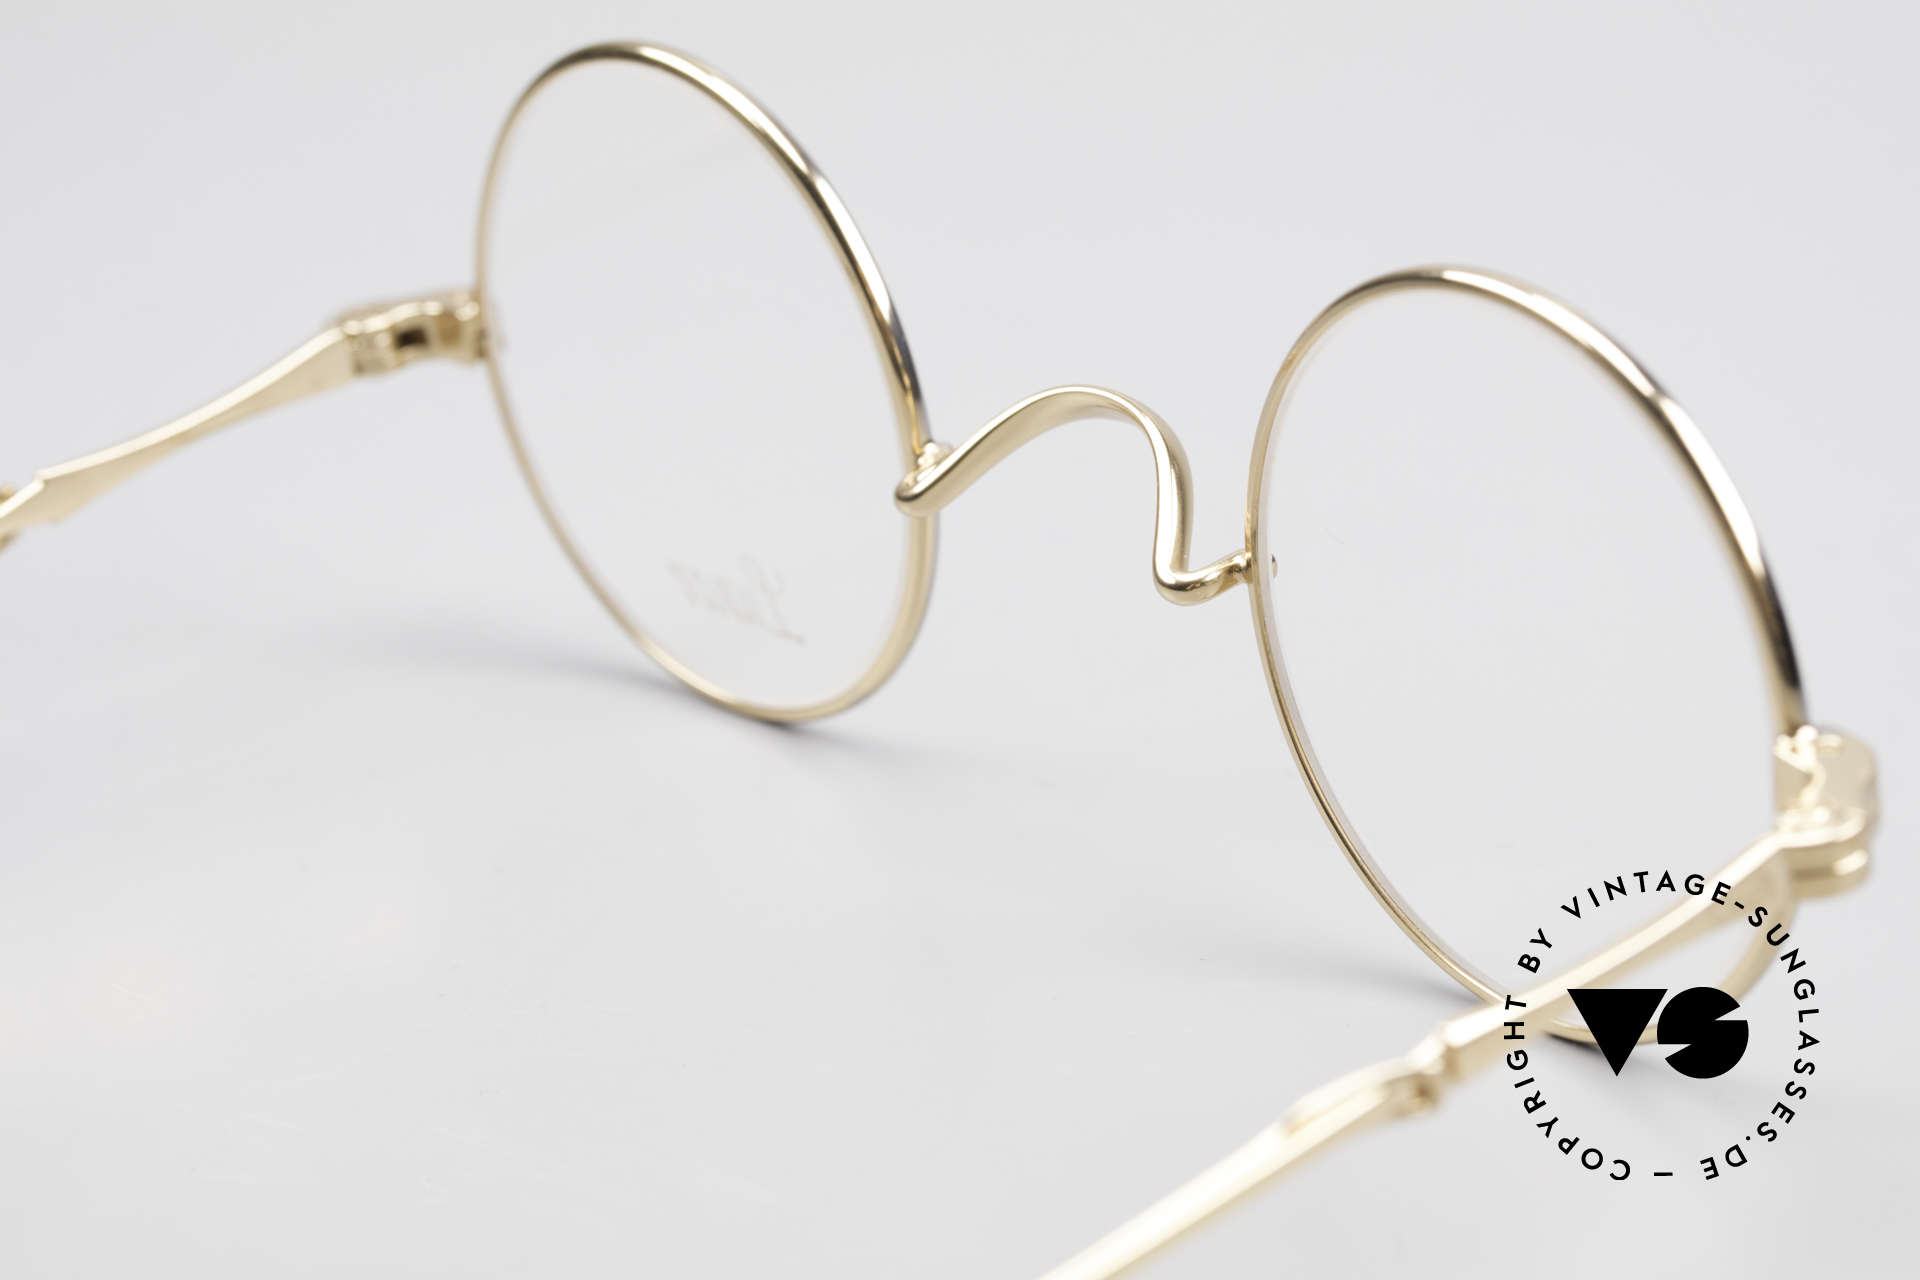 Lunor I 12 Telescopic Slide Temples Telescopic Specs, this precious Lunor frame is GOLD & PLATINUM PLATED, Made for Men and Women